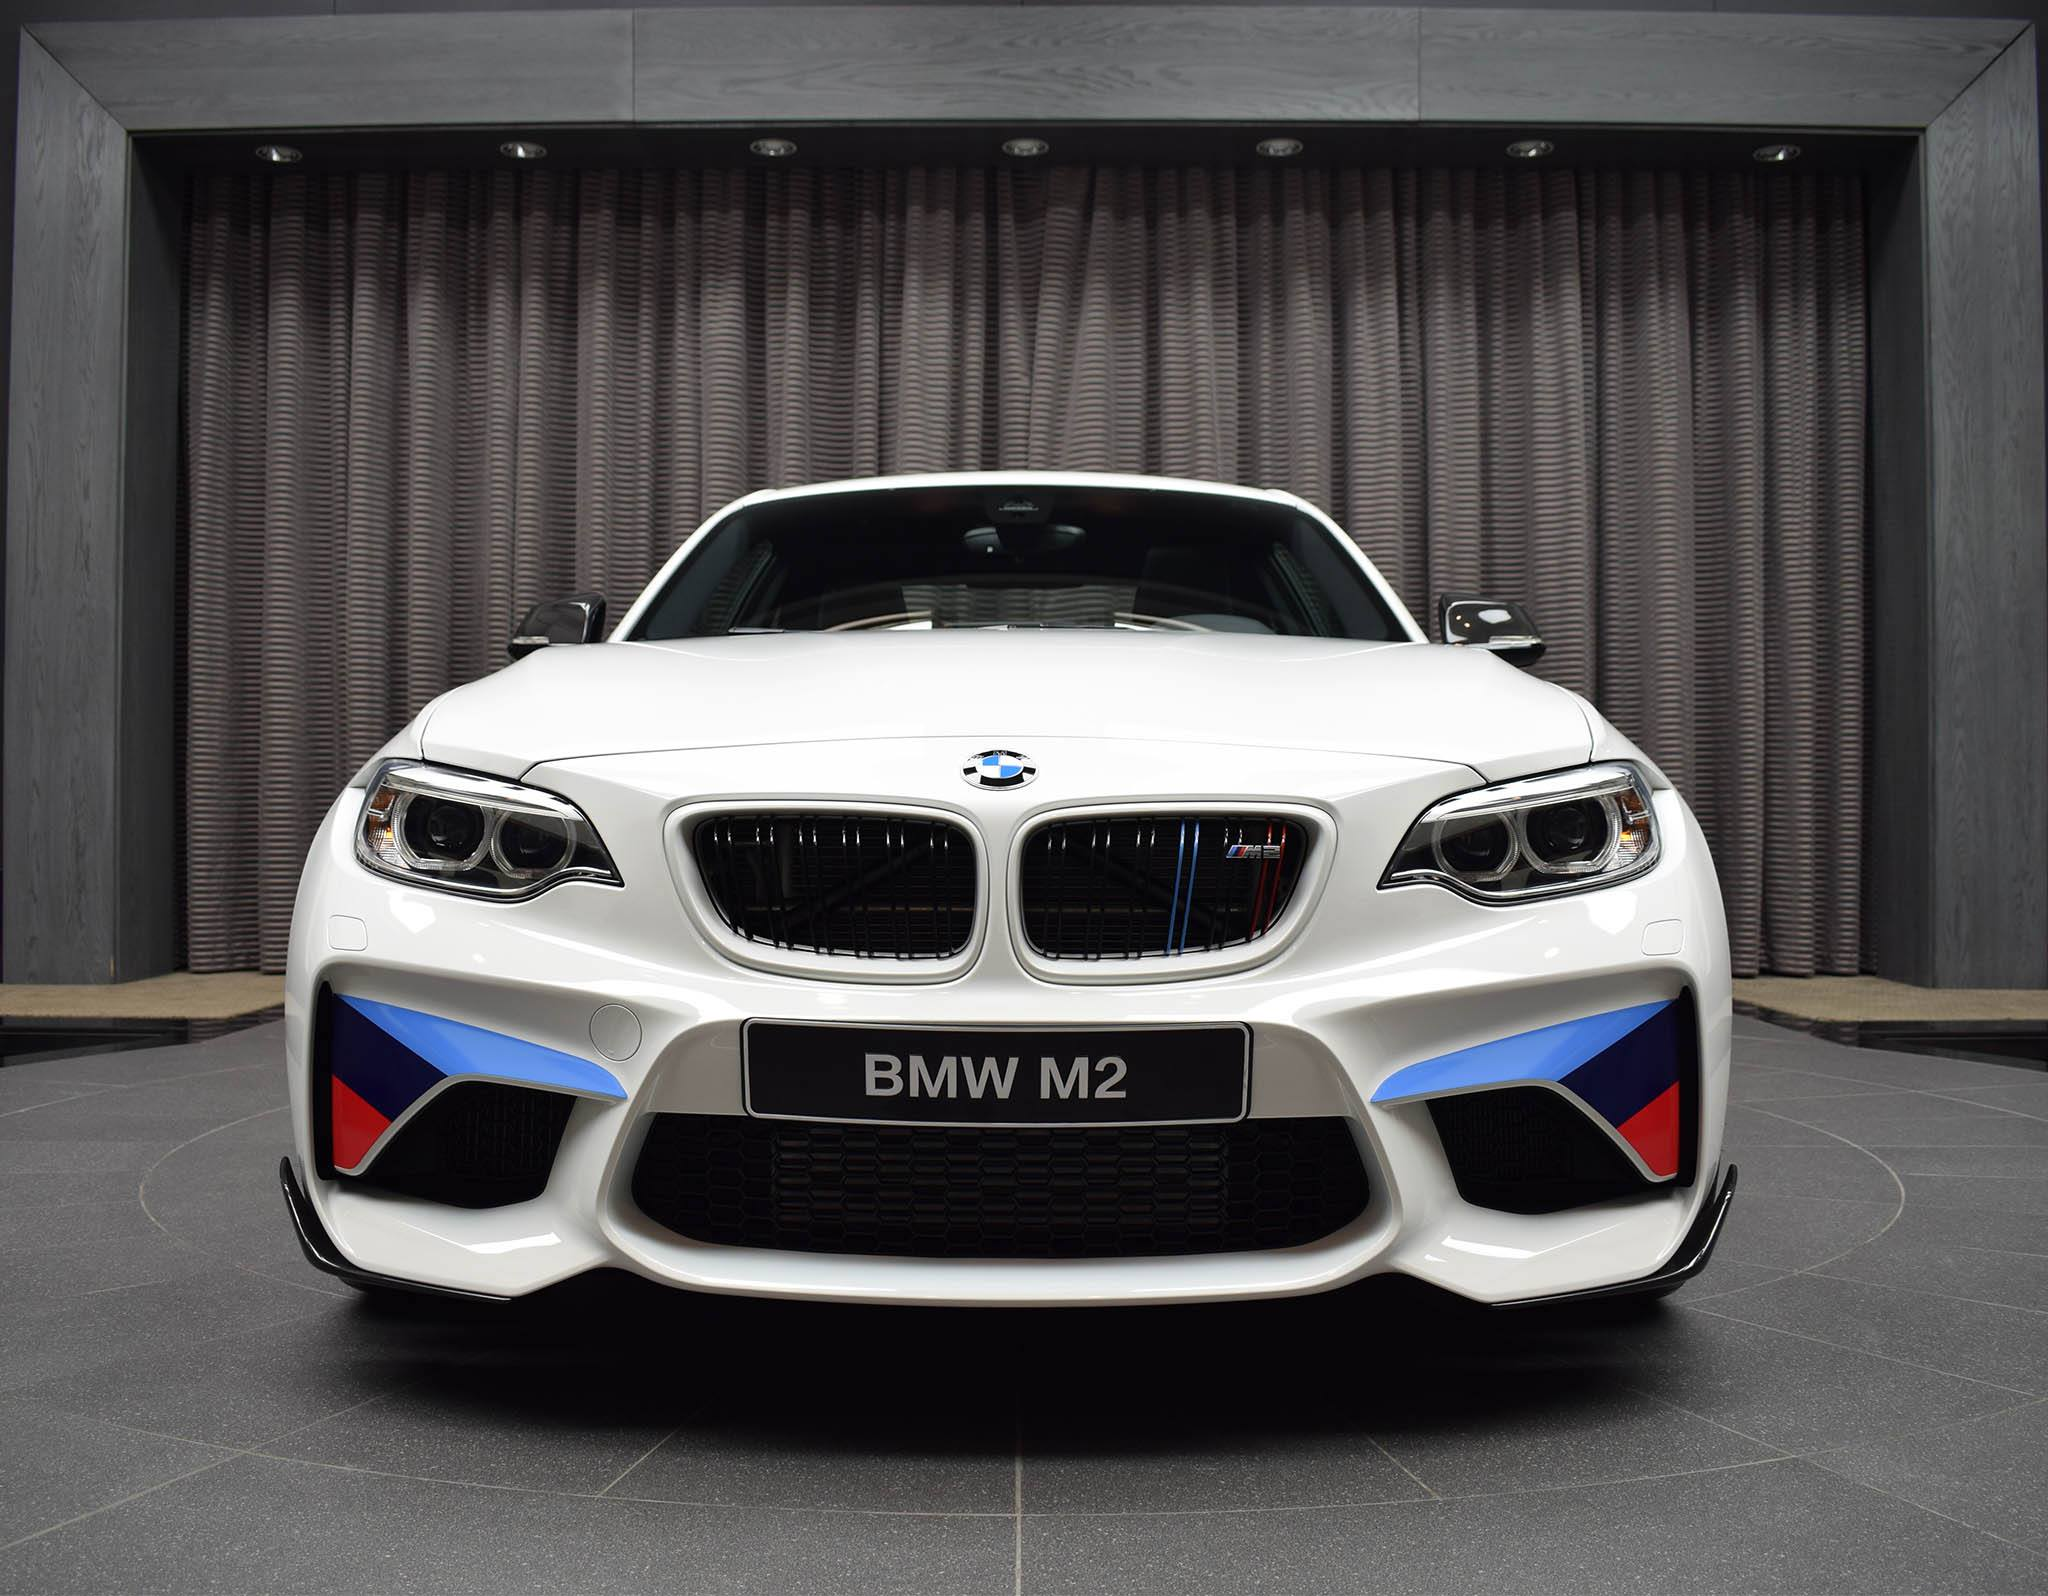 BMW M2 with M Performance parts (3)